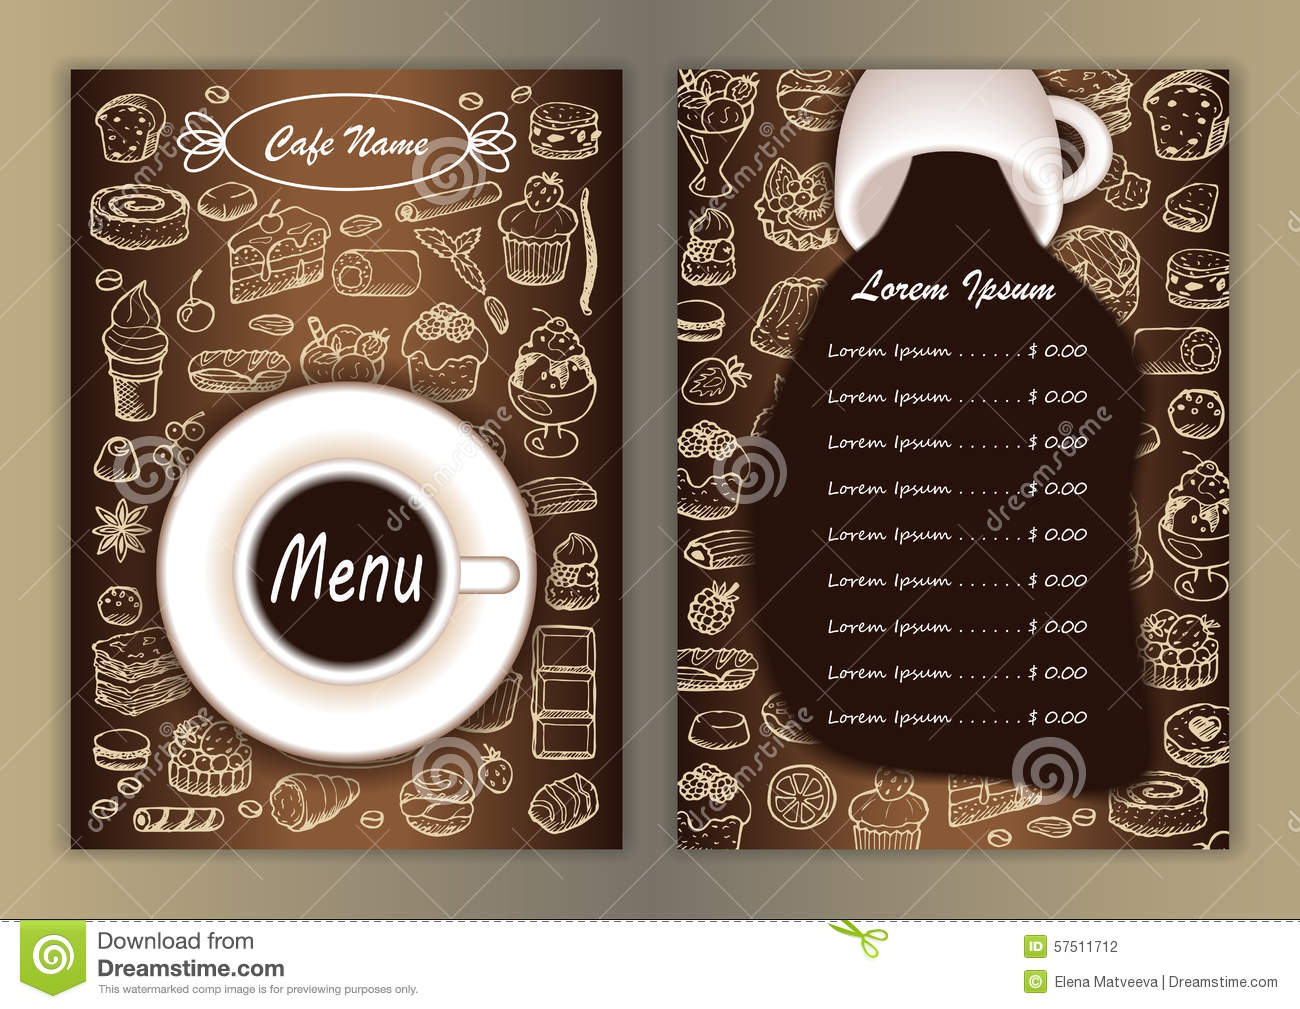 Cafe Menu With Hand Drawn Doodle Elements Stock Vector